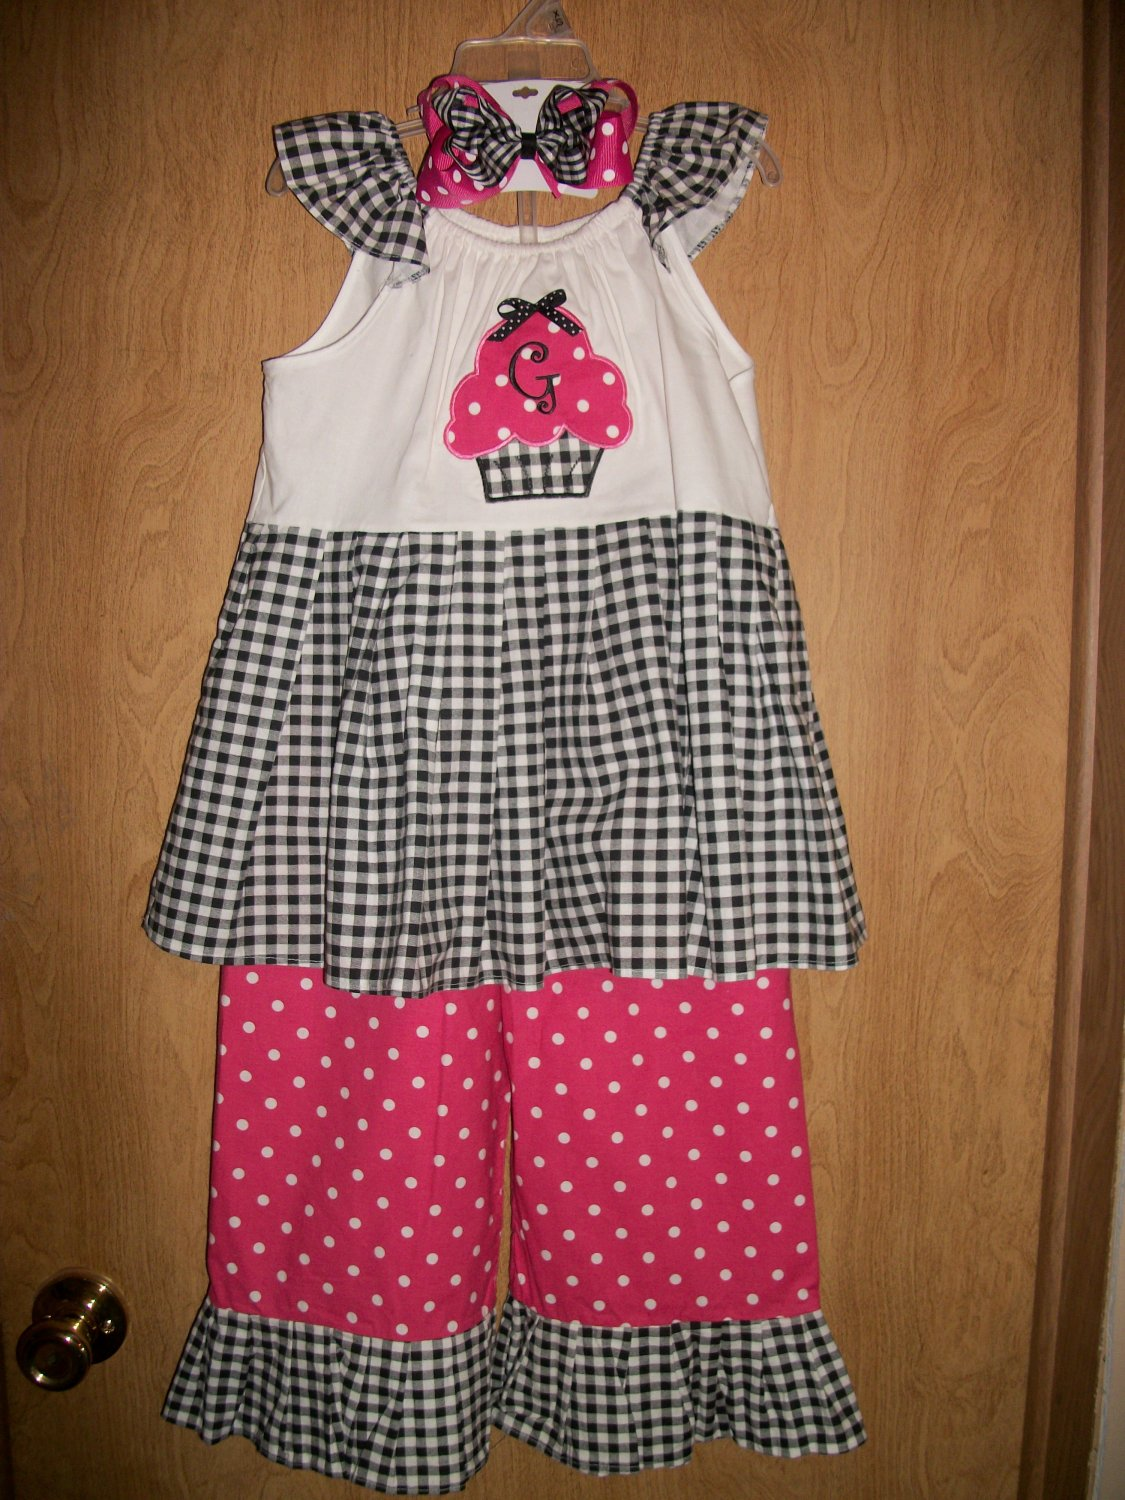 Girls handmade capri outfit with matching hairbow